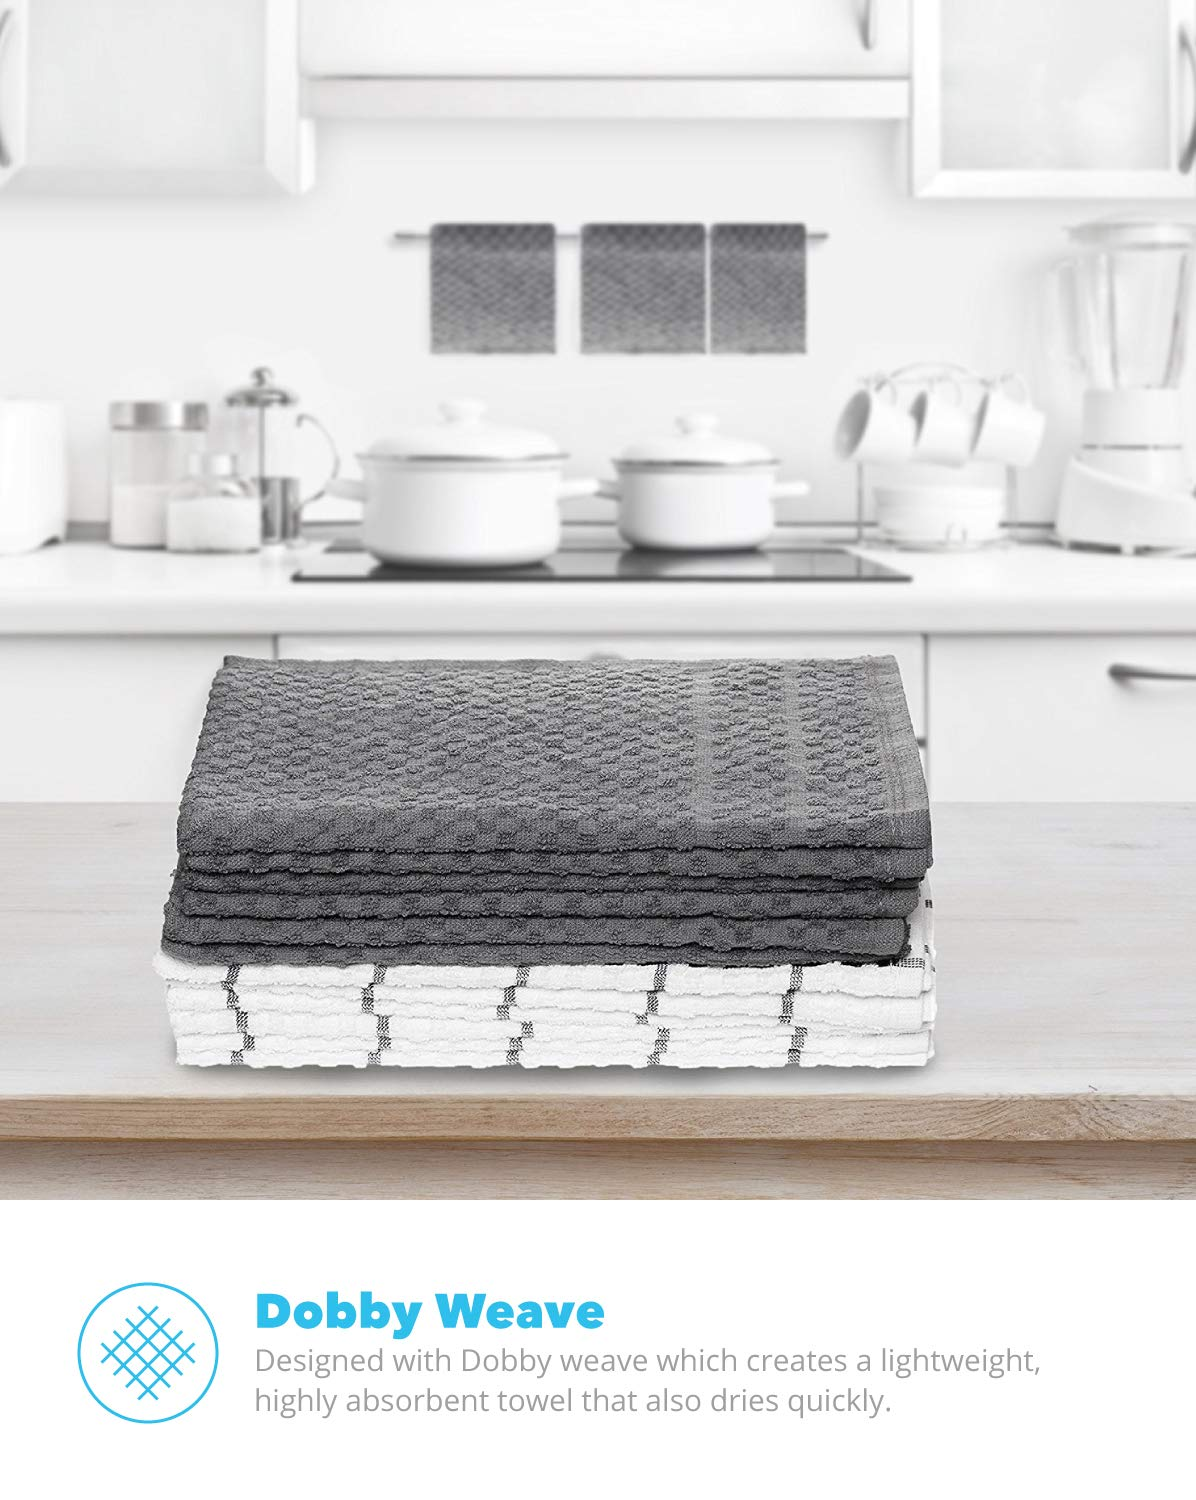 12-Pack 12 Pack Dobby Weave -Great for Cooking in Kitchen and Household Cleaning 100% Soft Cotton -15 x 25 Zeppoli Kitchen Towels